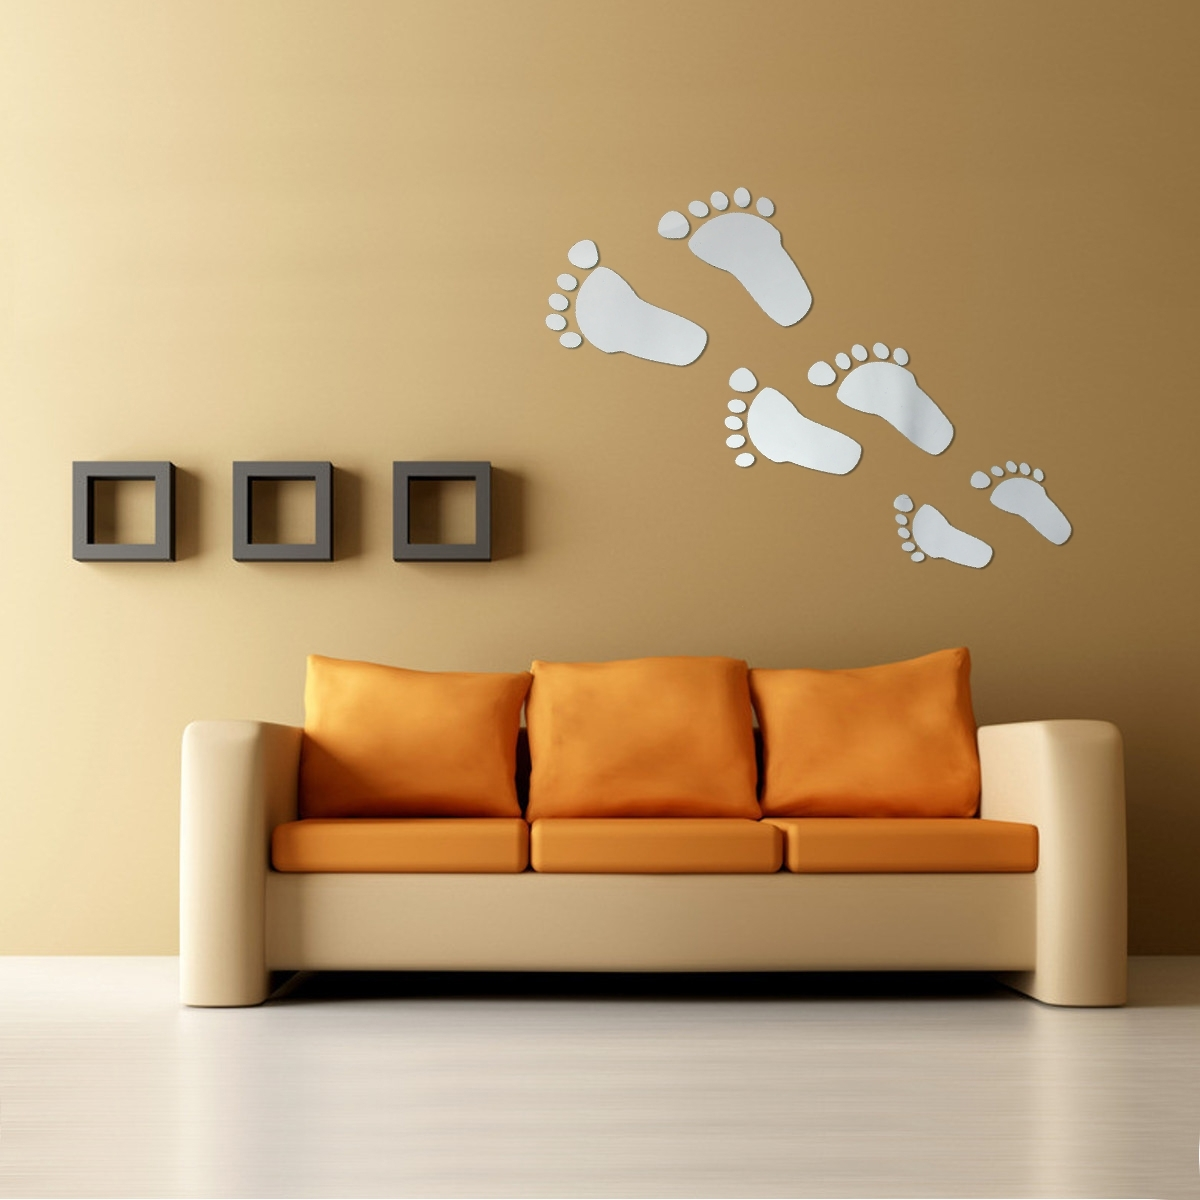 6Pcs Diy Footprint Acrylic Wall Sticker Fat Footprints Mirror Wall In 2017 Acrylic Wall Art (View 6 of 20)